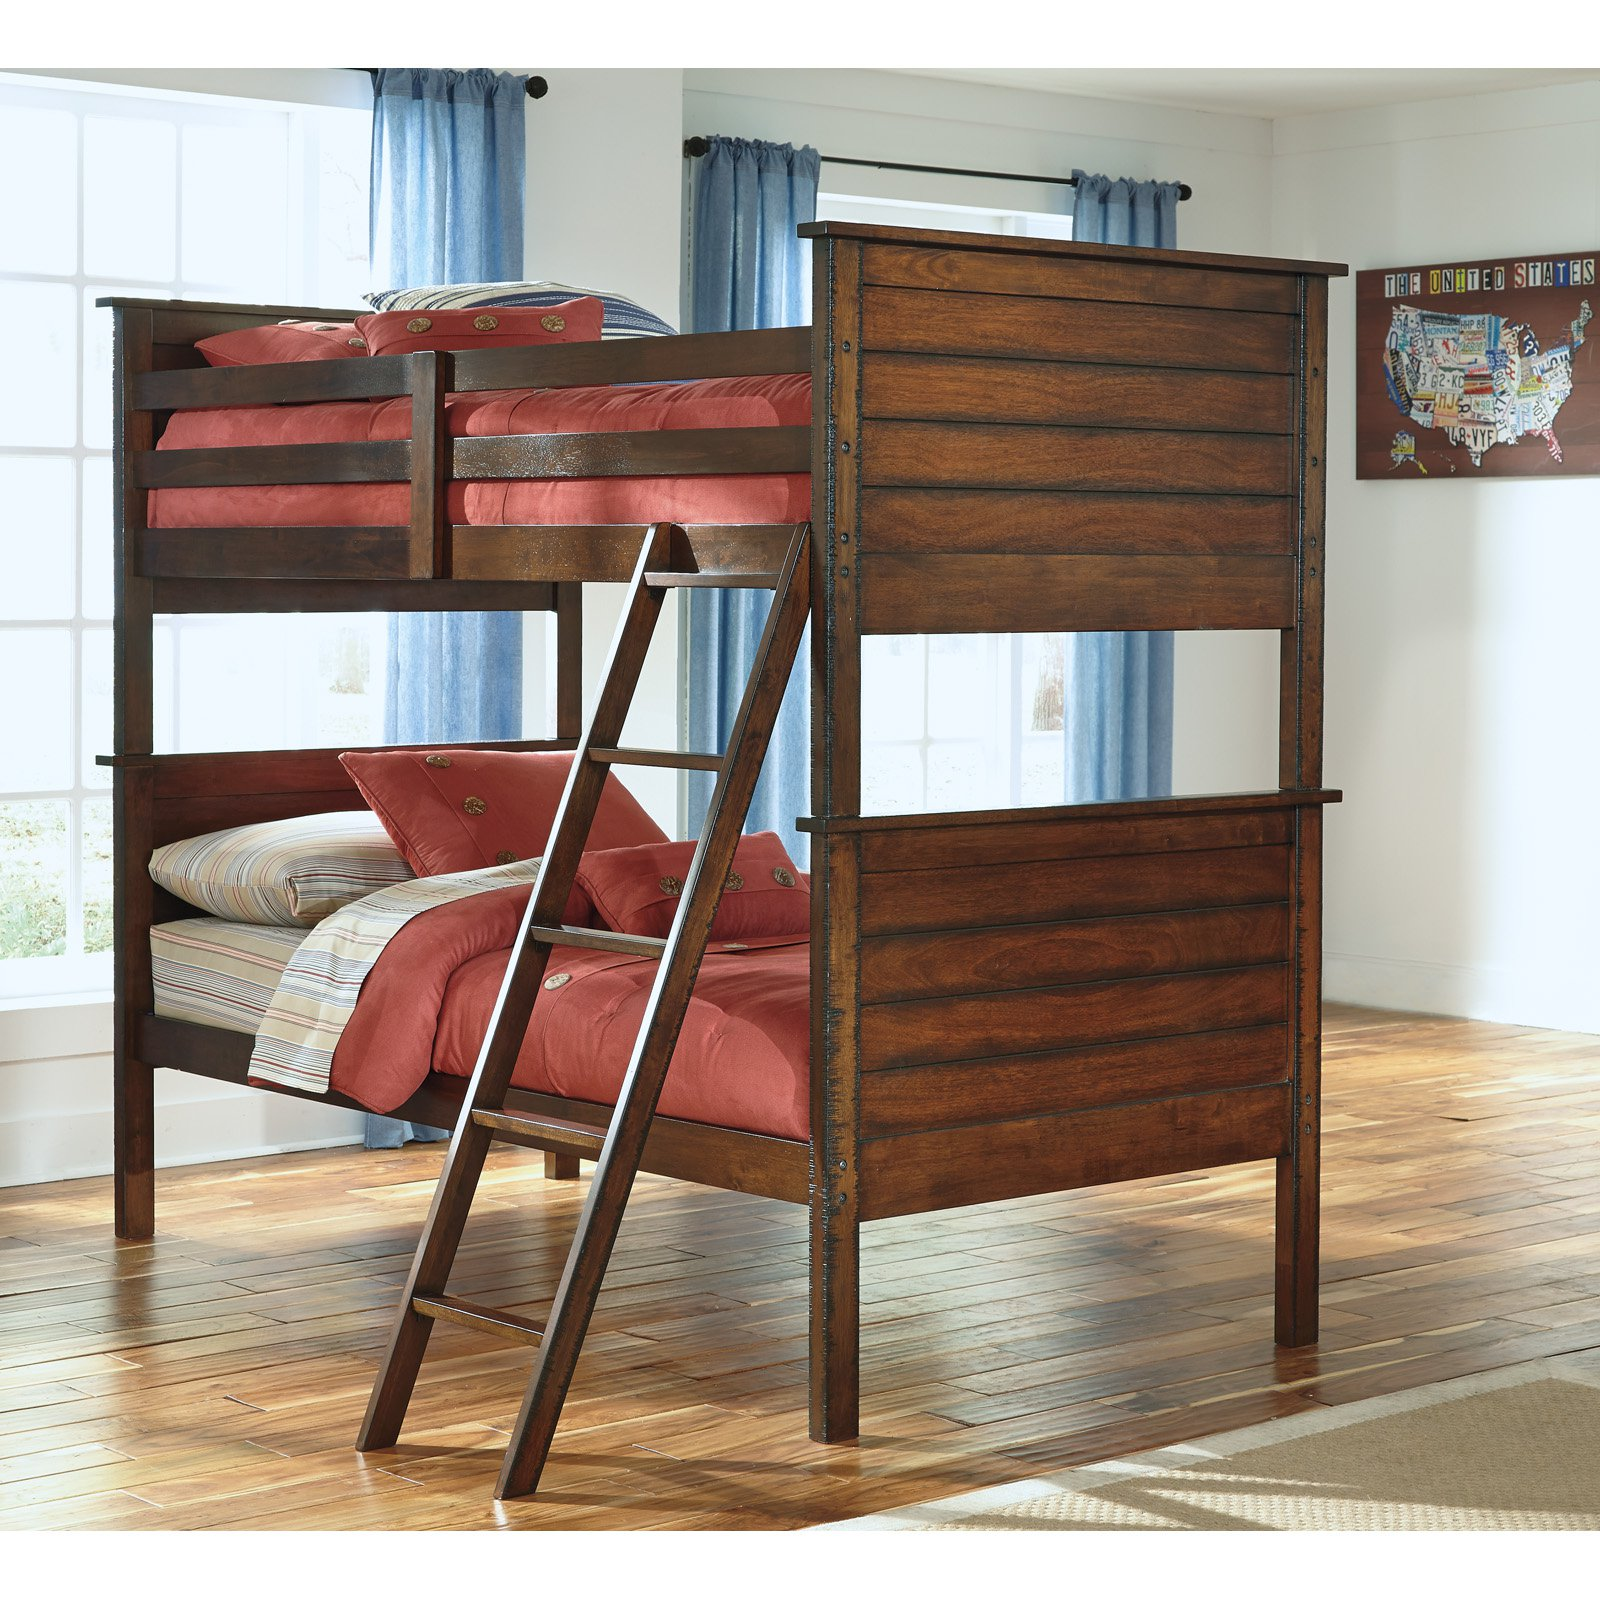 Signature Design by Ashley Ladiville Twin over Twin Bunk Bed - Rustic Brown